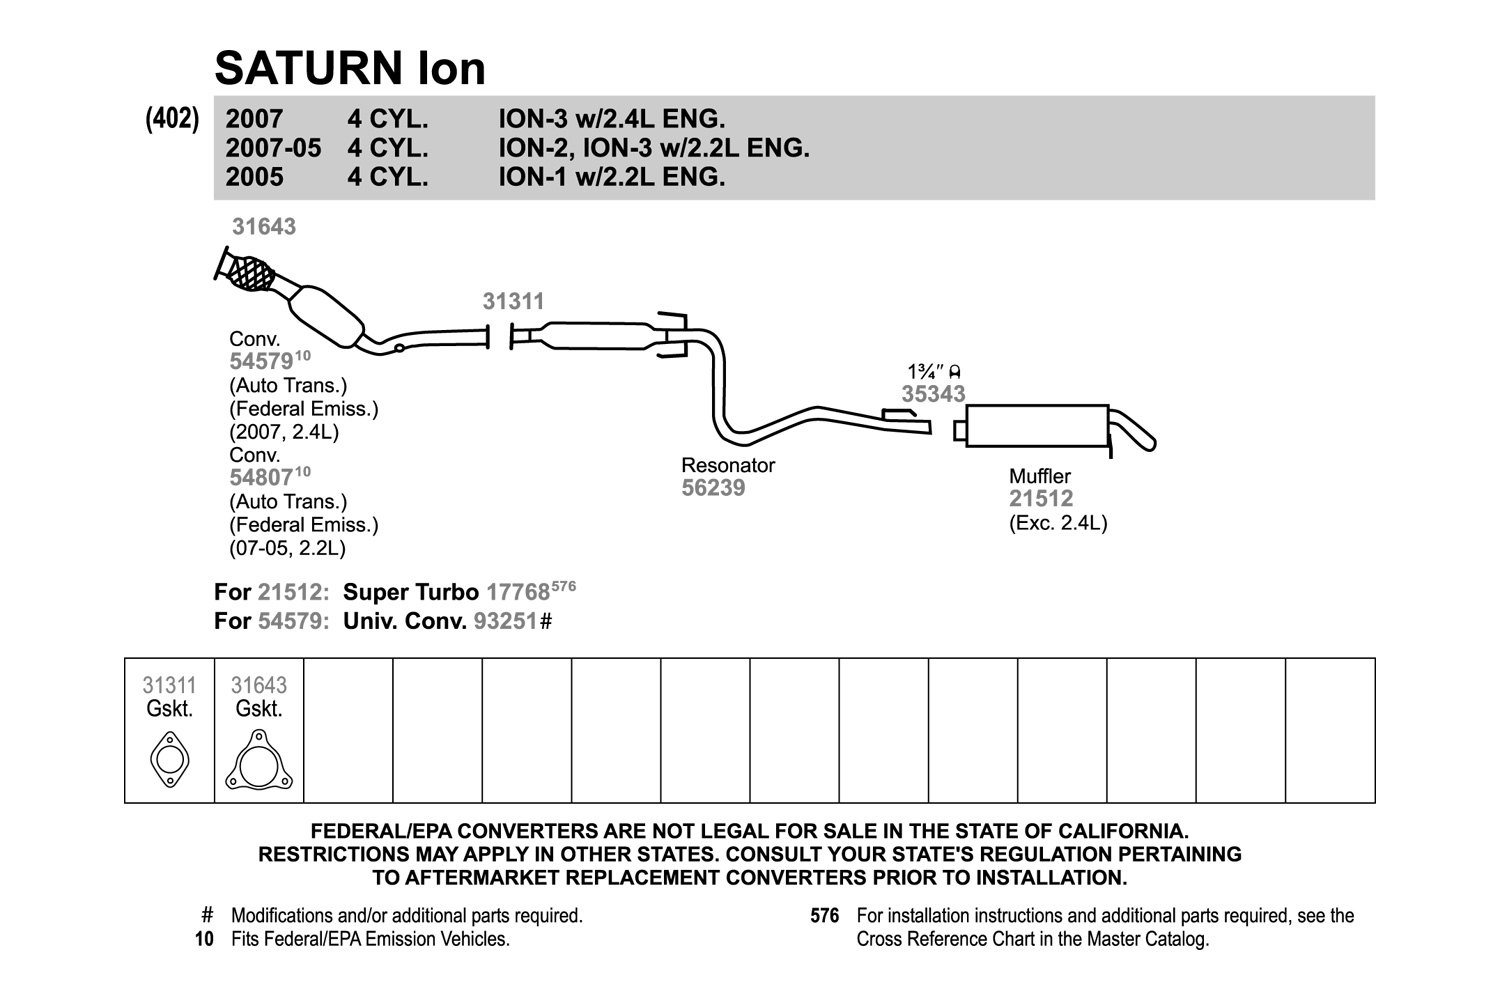 Wiring Diagram For 2007 Saturn Ion